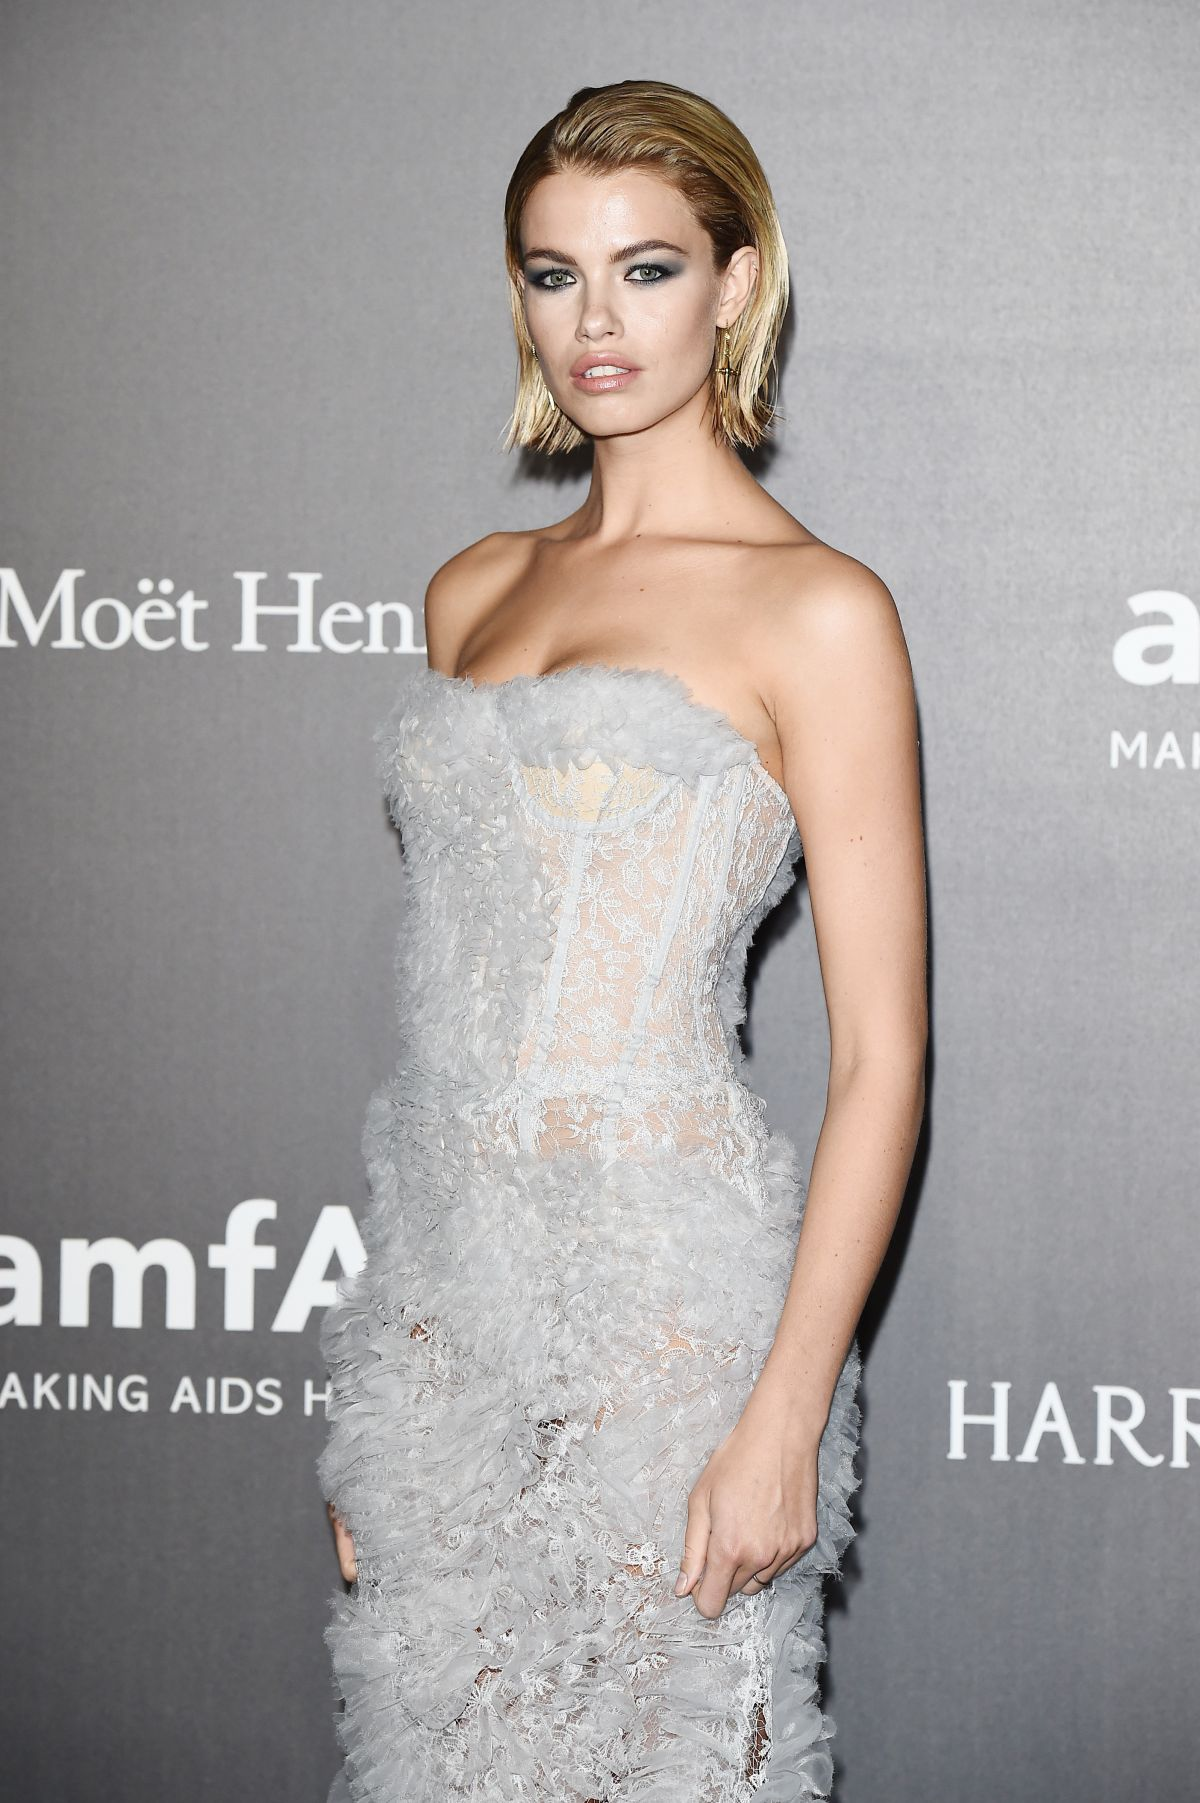 HAILEY CLAUSON at Amfar Gala in Milano 09/21/2017